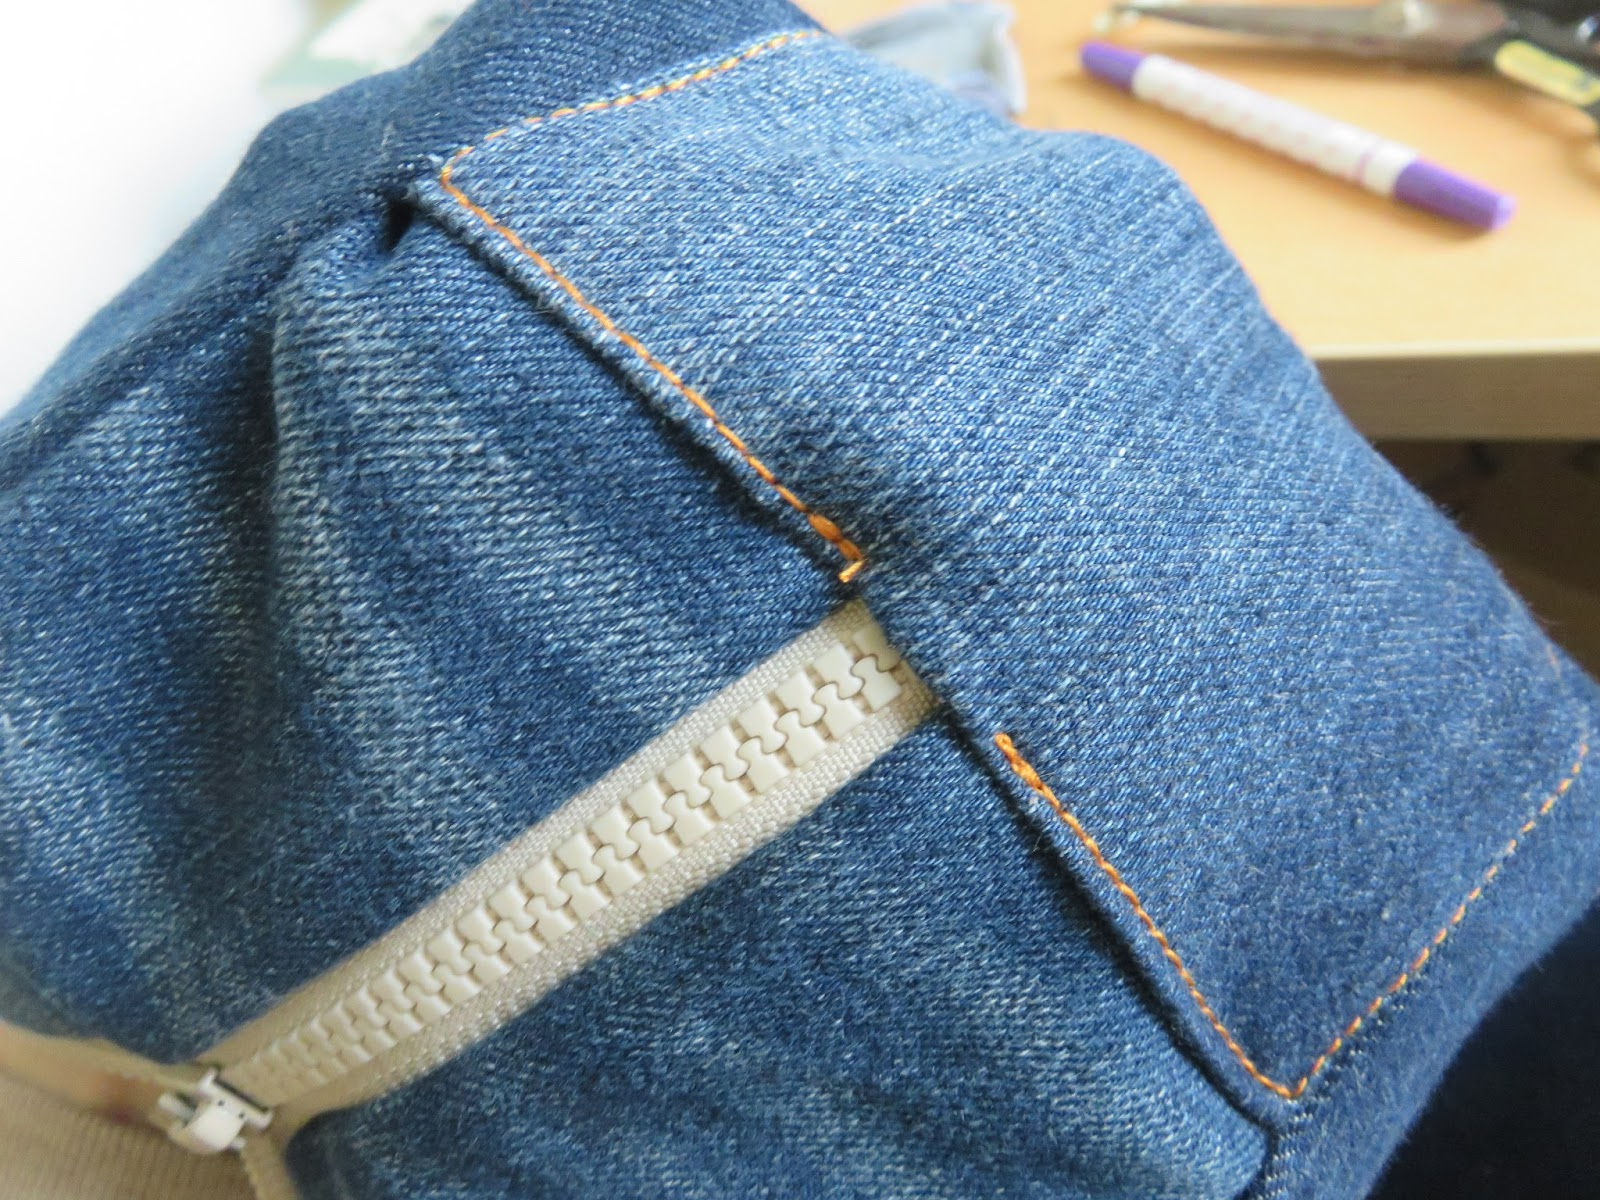 Knitting Joining Side Seams : Crafty mummy japan knitting machine dust cover tutorial